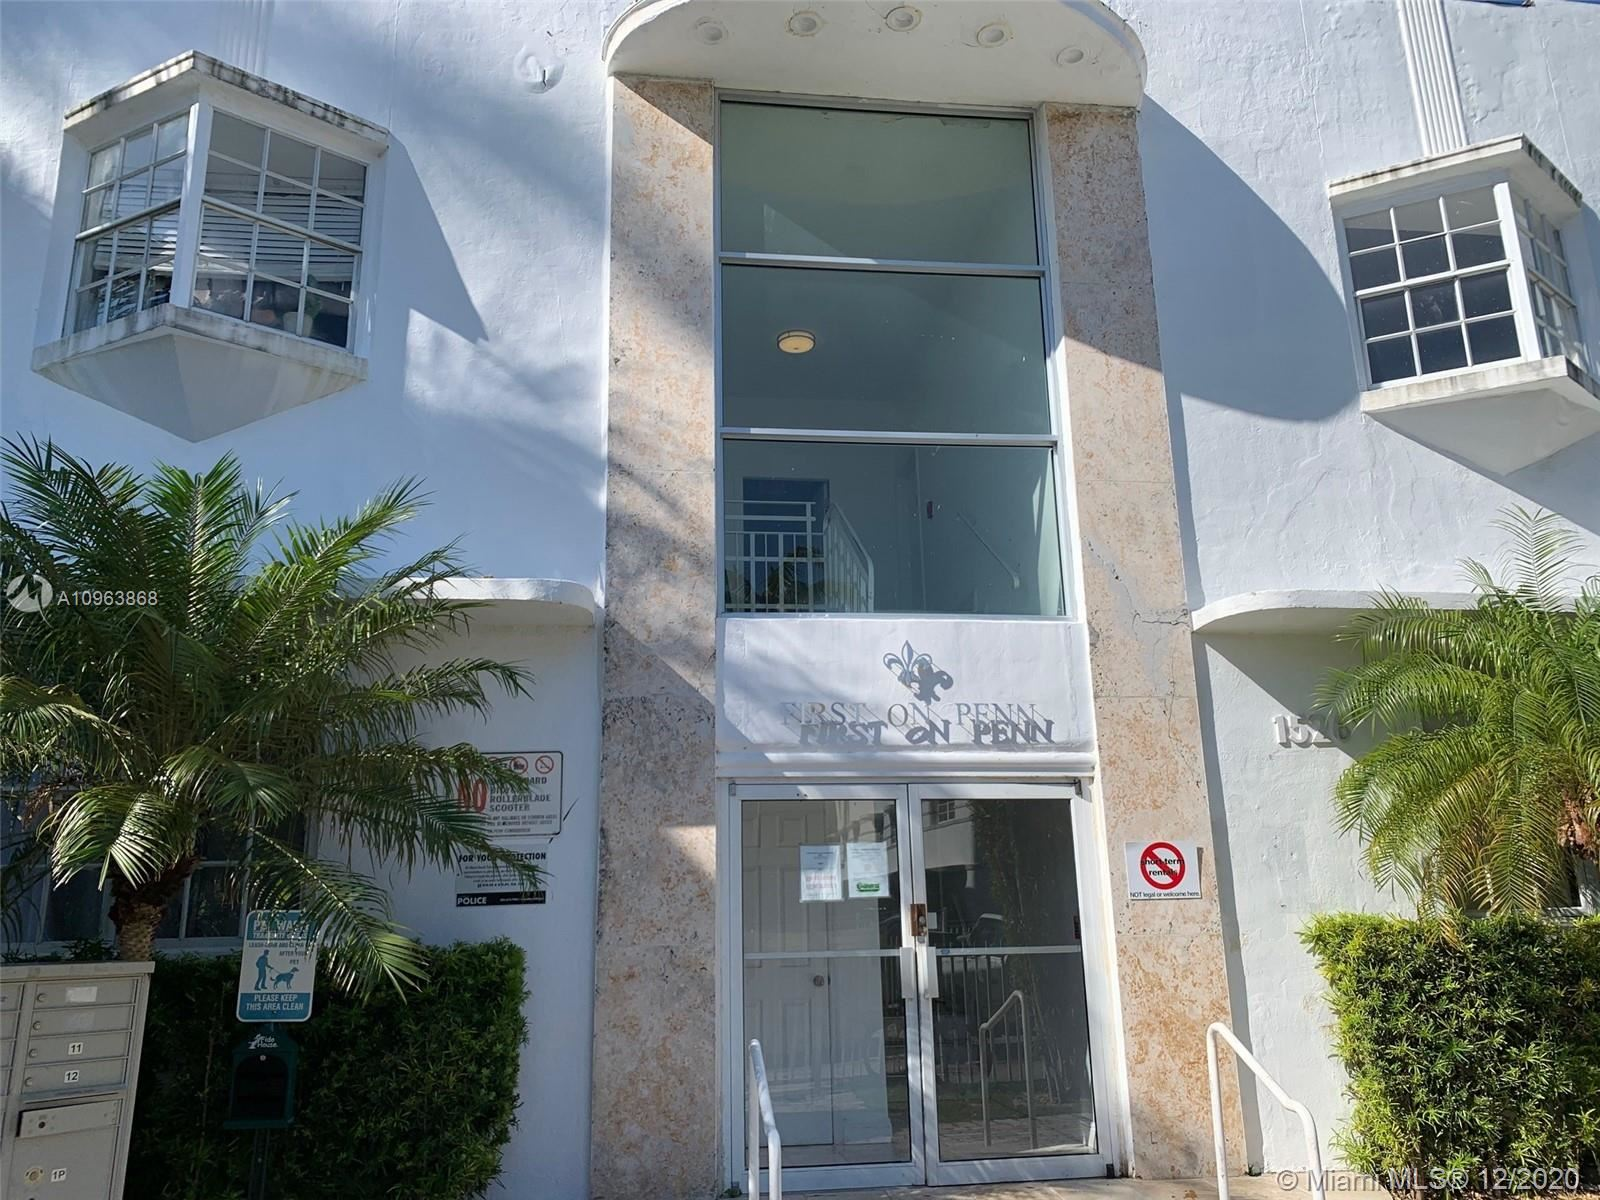 1526 Pennsylvania Ave #11, Miami Beach, FL 33139 - #: A10963868